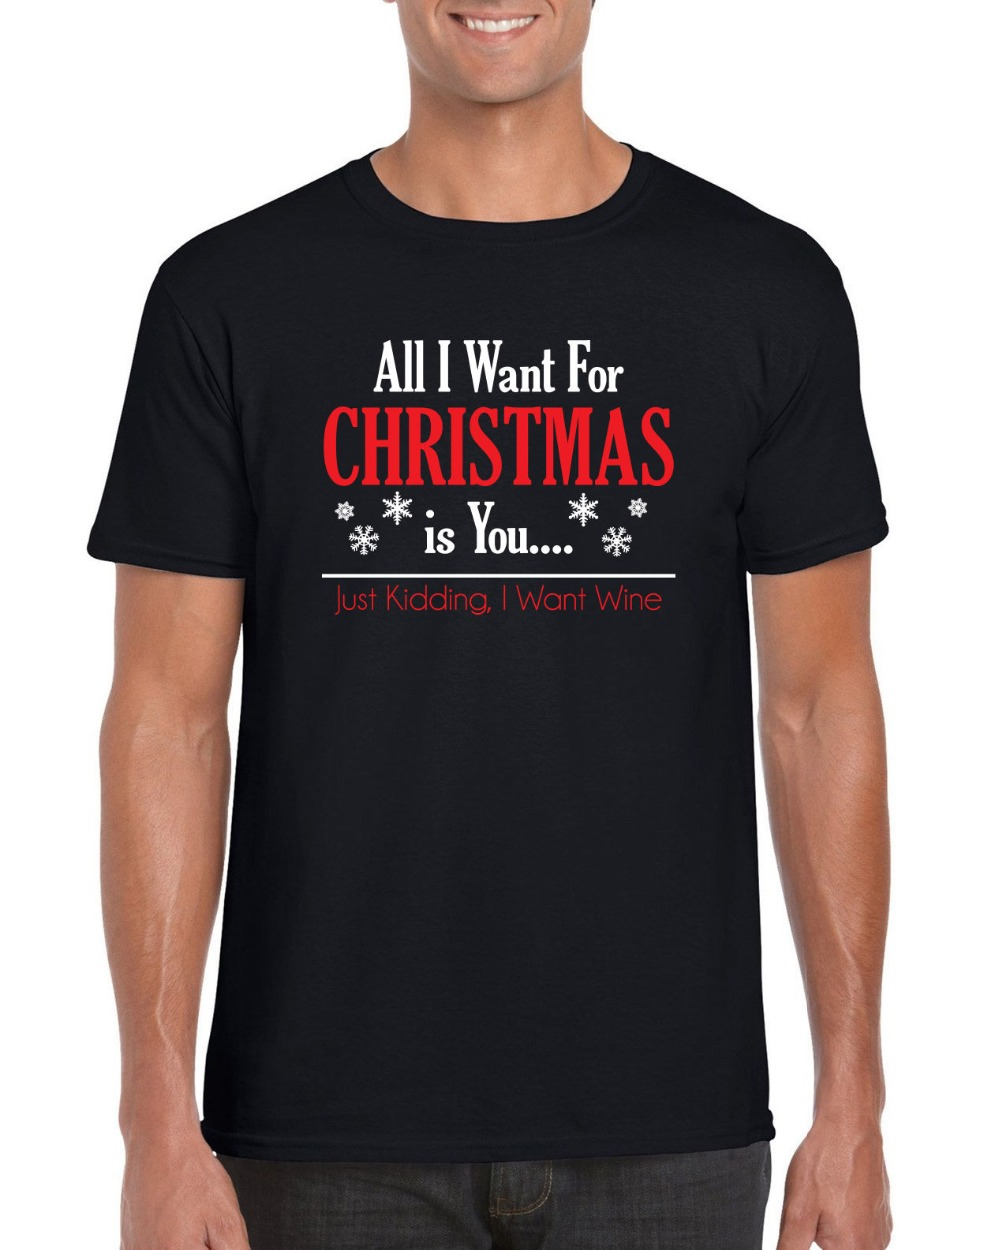 T shirt design quad cities - 8 Shirts Screen Printing T Shirts O Neck All Want For Christmas Is You